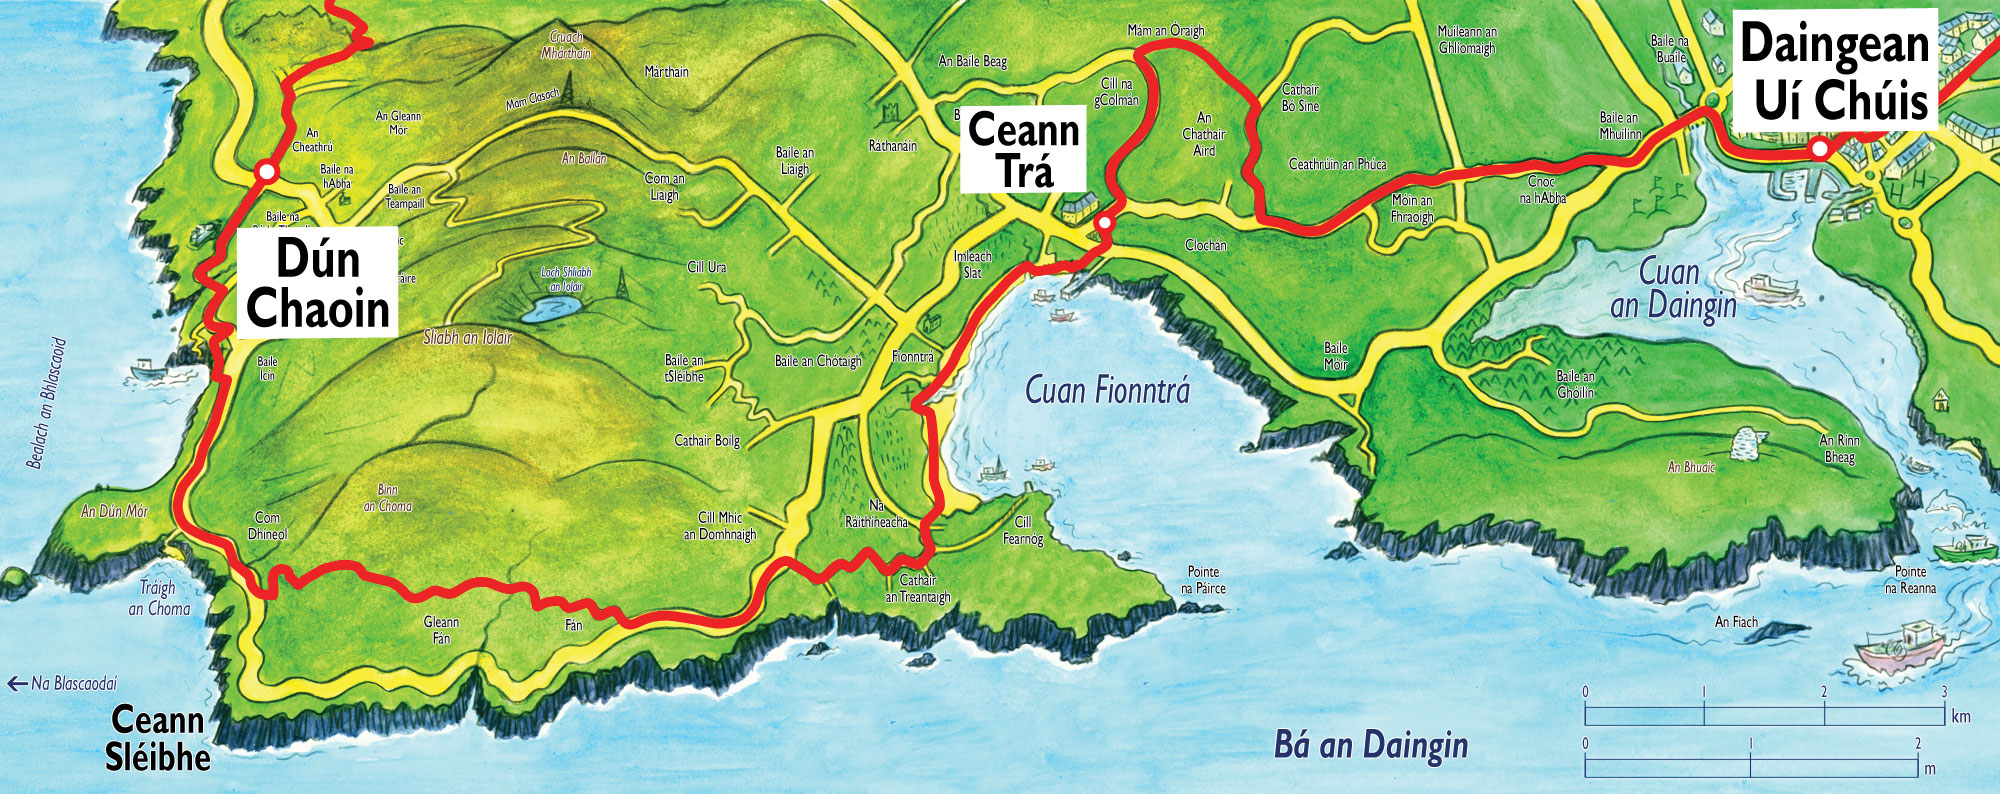 Dingle Bay Ireland Map.Dingle To Dunquin Section Of The Dingle Way Walking Trails In Ireland